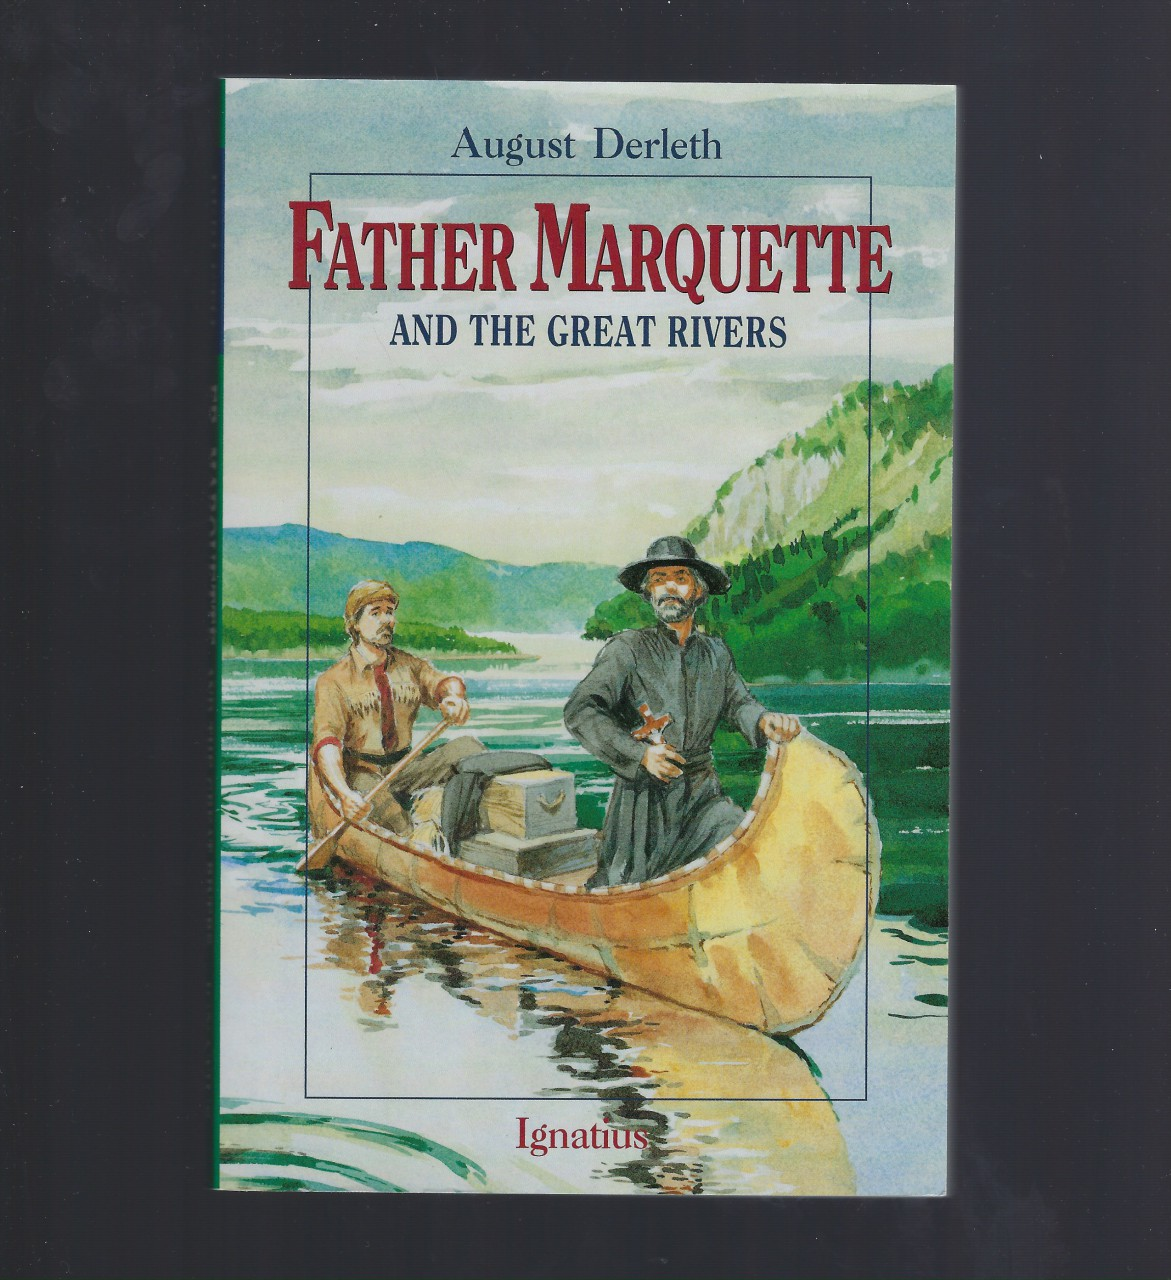 Father Marquette and the Great Rivers (Lk New) Vision Books, August William Derleth; Illustrator-H. Lawrence Hoffman